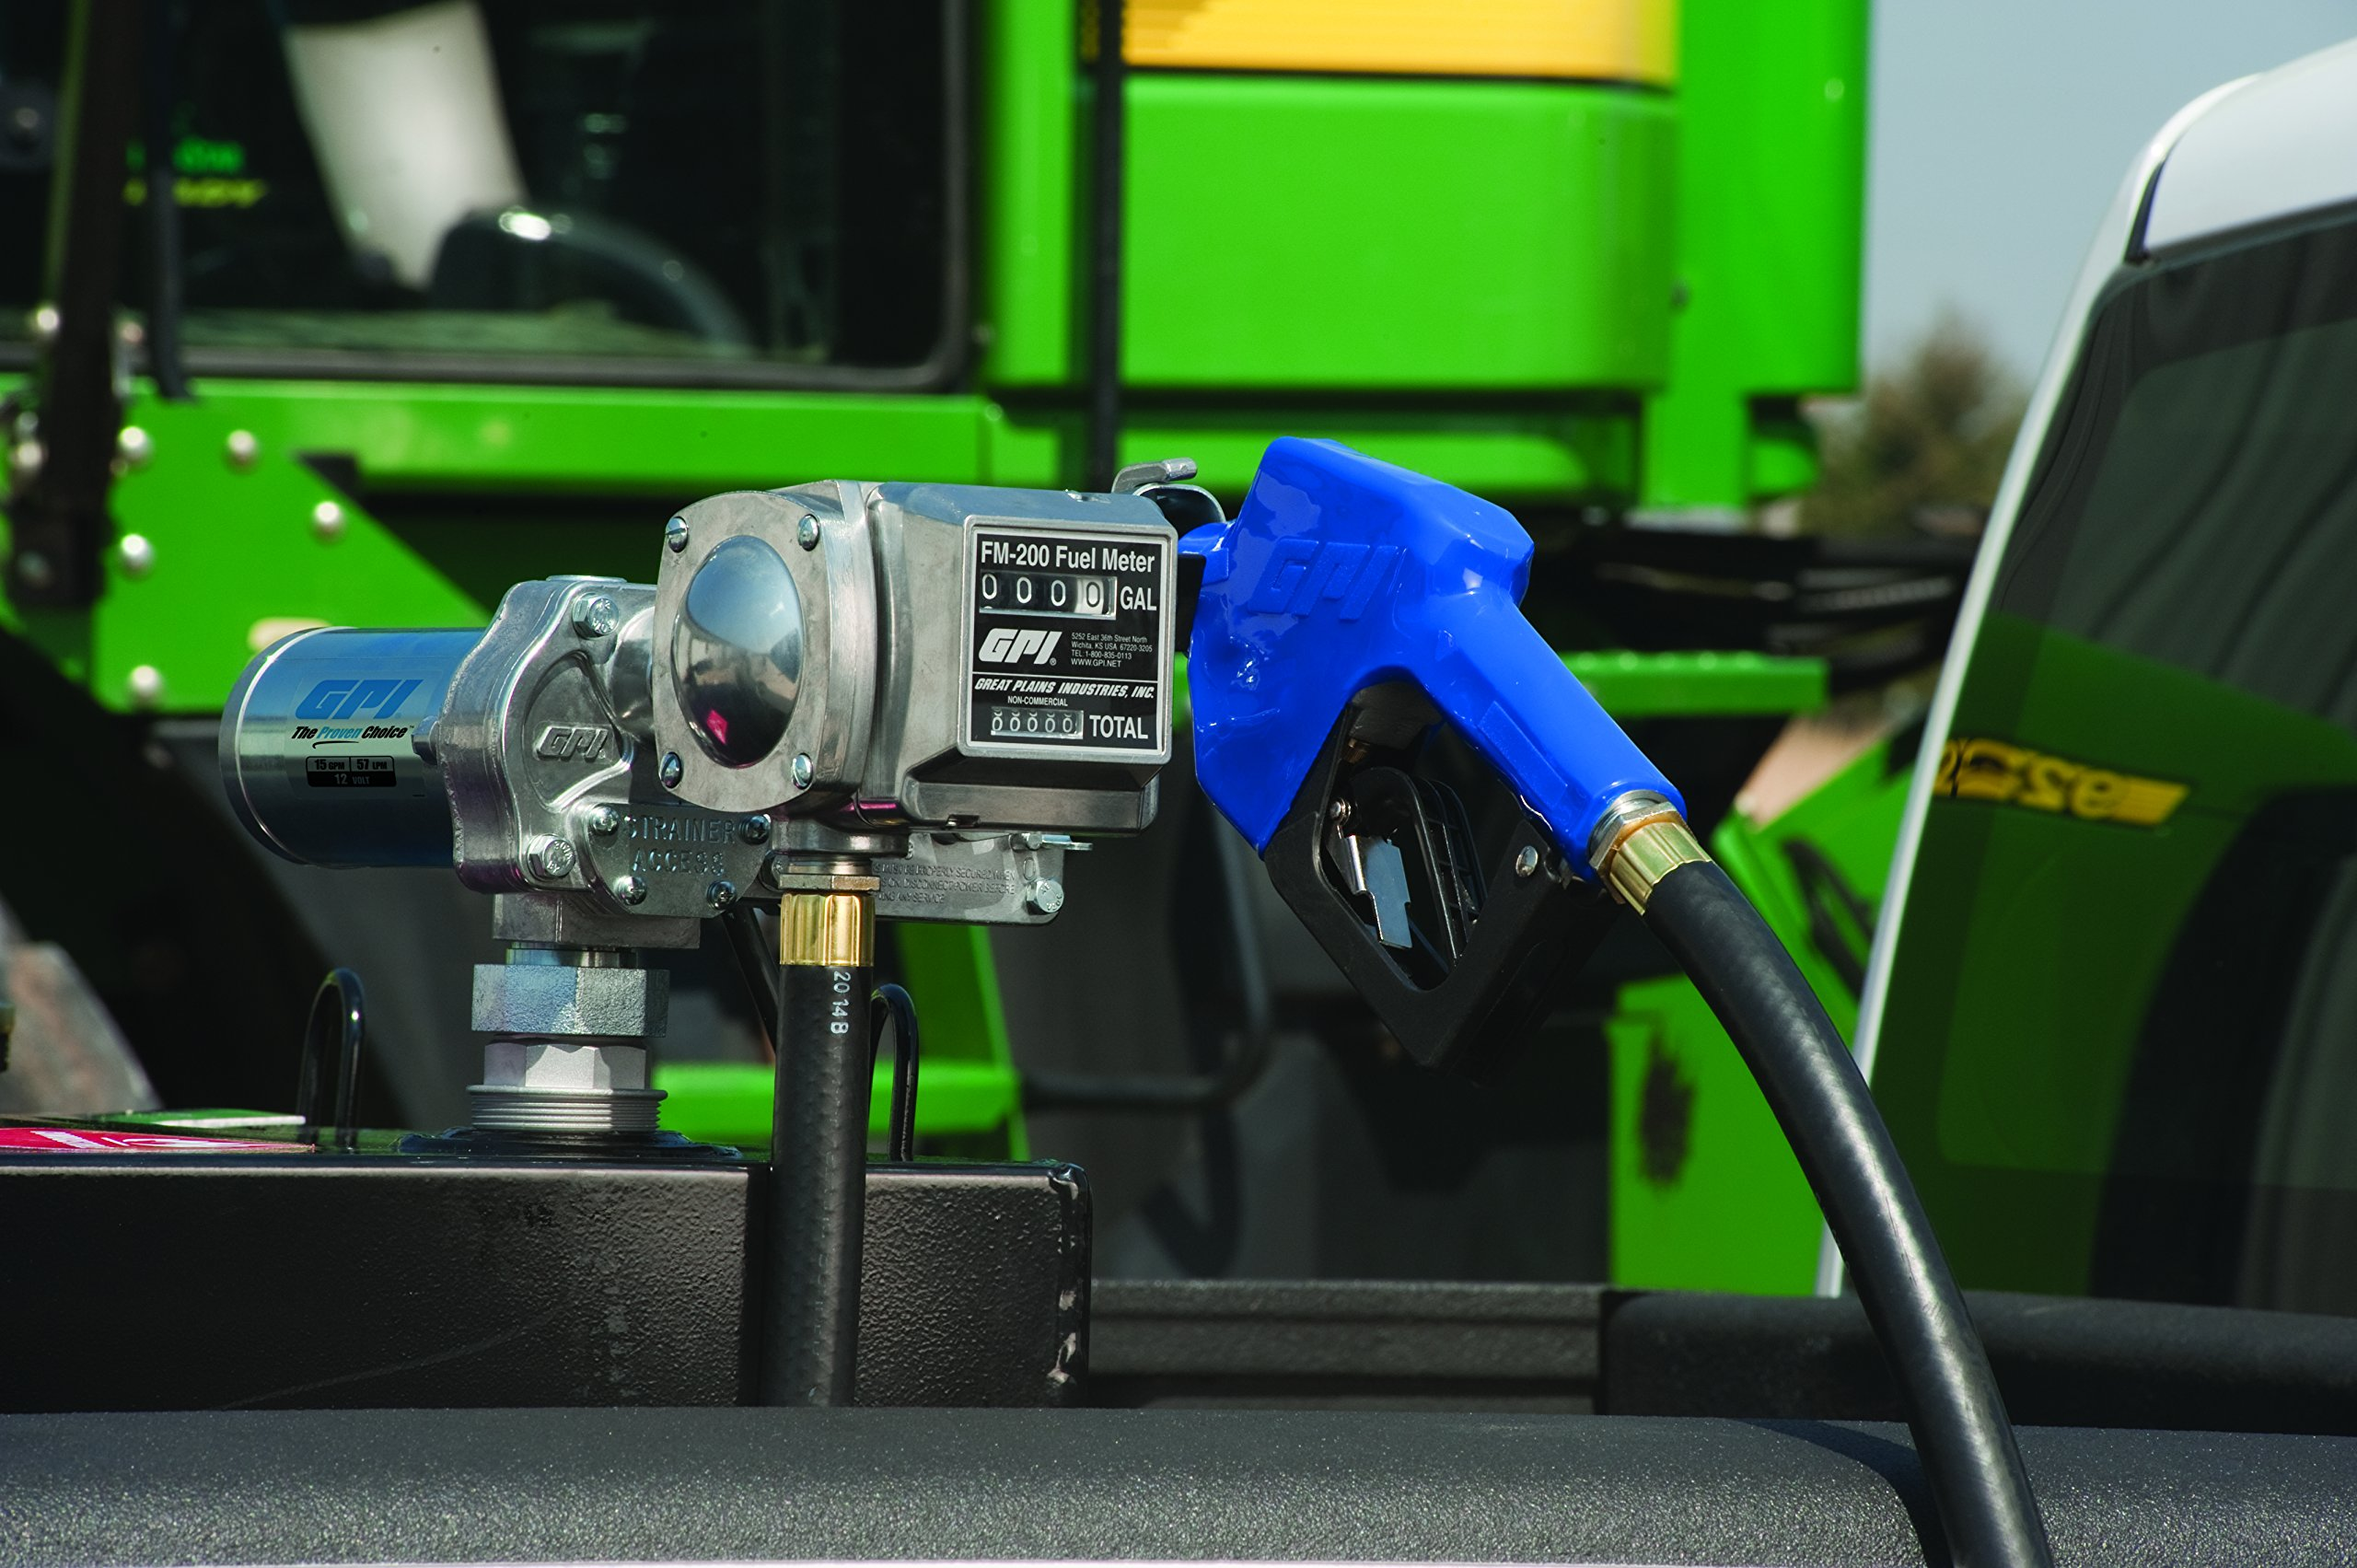 GPI 110610-13, M-150S-AU/FM200-G6N Fuel Transfer Pump/Meter, 15 GPM, 12-VDC, 0.75-Inch Automatic Unleaded Nozzle, 12-Foot X 0.75-Inch Dispensing Hose, 18Ft. Power Cord & Adjustable Suction Pipe